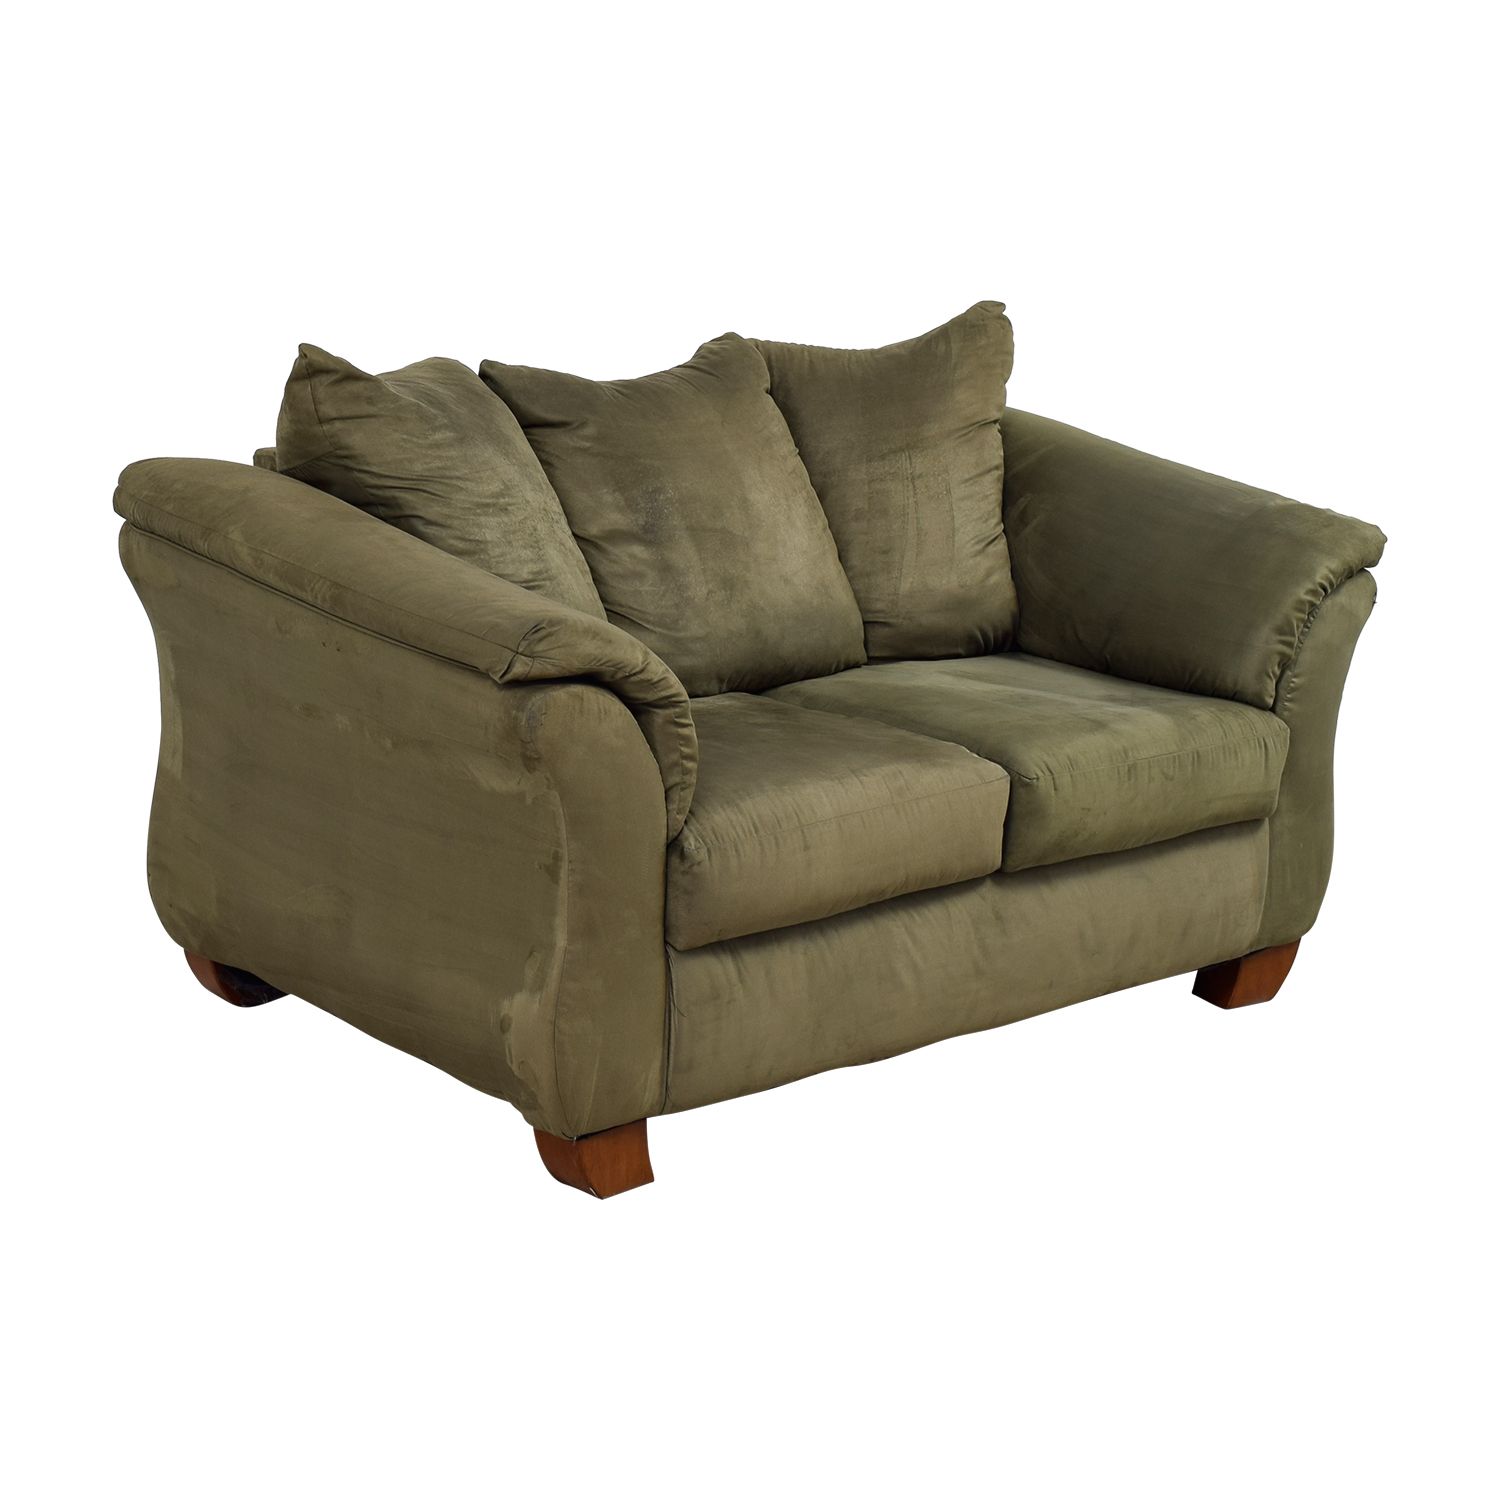 buy Forest Green Two-Cushion Loveseat